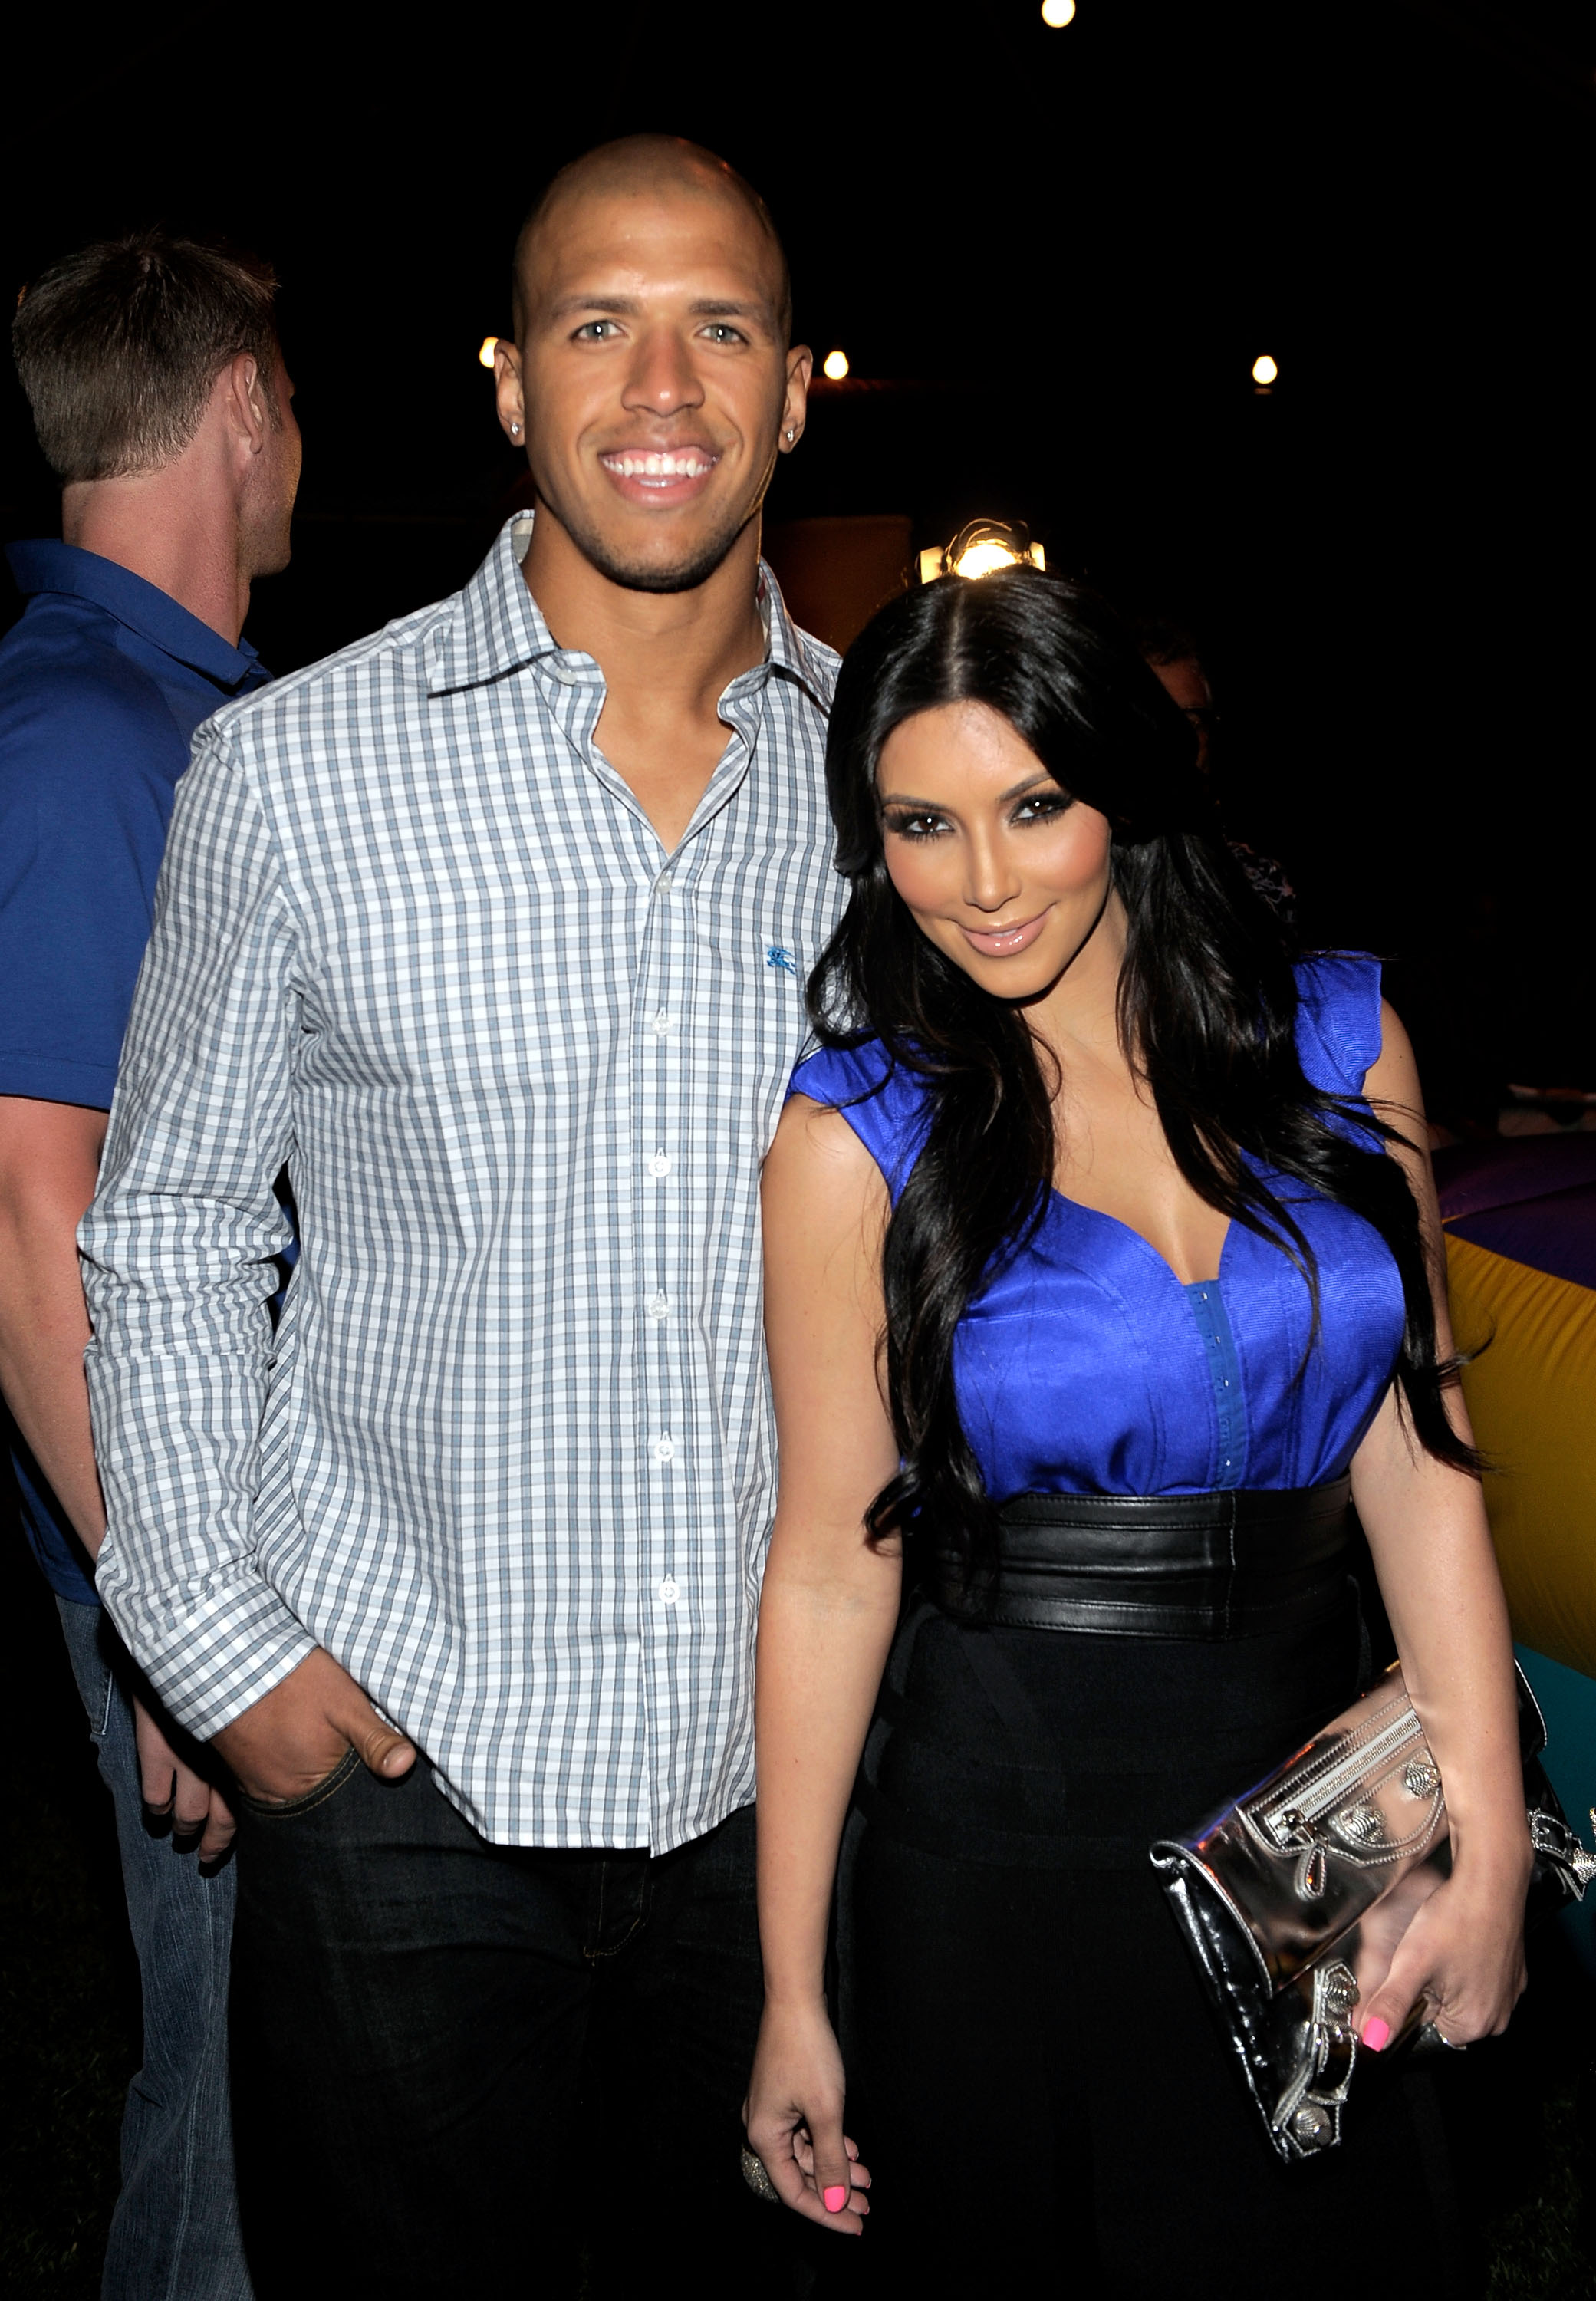 BEL AIR, CA - JULY 12:  Dallas Cowboys football player Miles Austin and actress Kim Kardashian attend professional tennis player Serena Williams' Pre-ESPYs House Party held at a private residence on July 12, 2010 in Bel Air, California.  (Photo by Charley